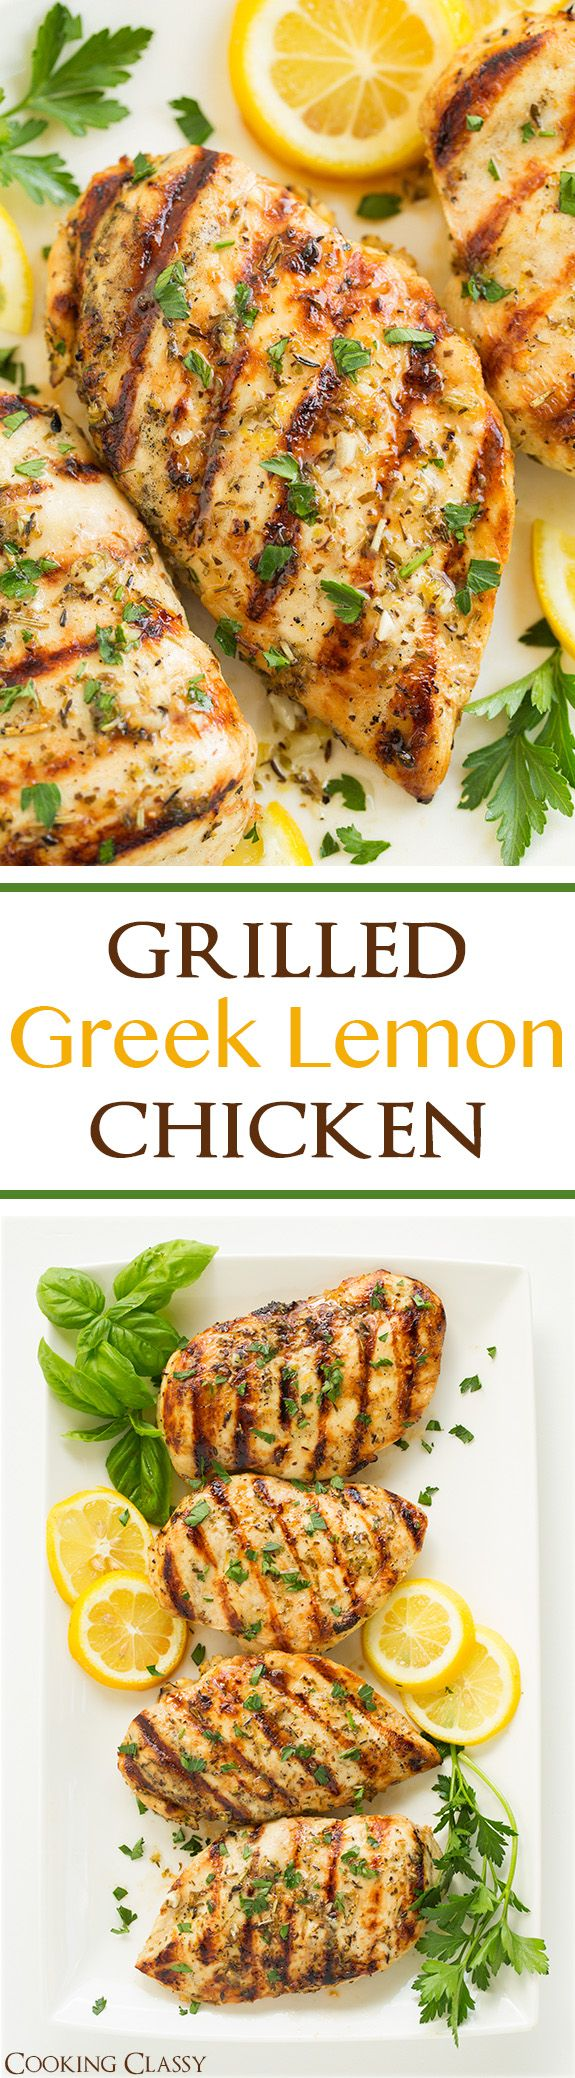 Grilled Greek Lemon Chicken  this chicken is so easy to prepare and it's deliciously flavorful! A go to dinner recipe! Marinated and grilled to perfection! is part of Chicken recipes -